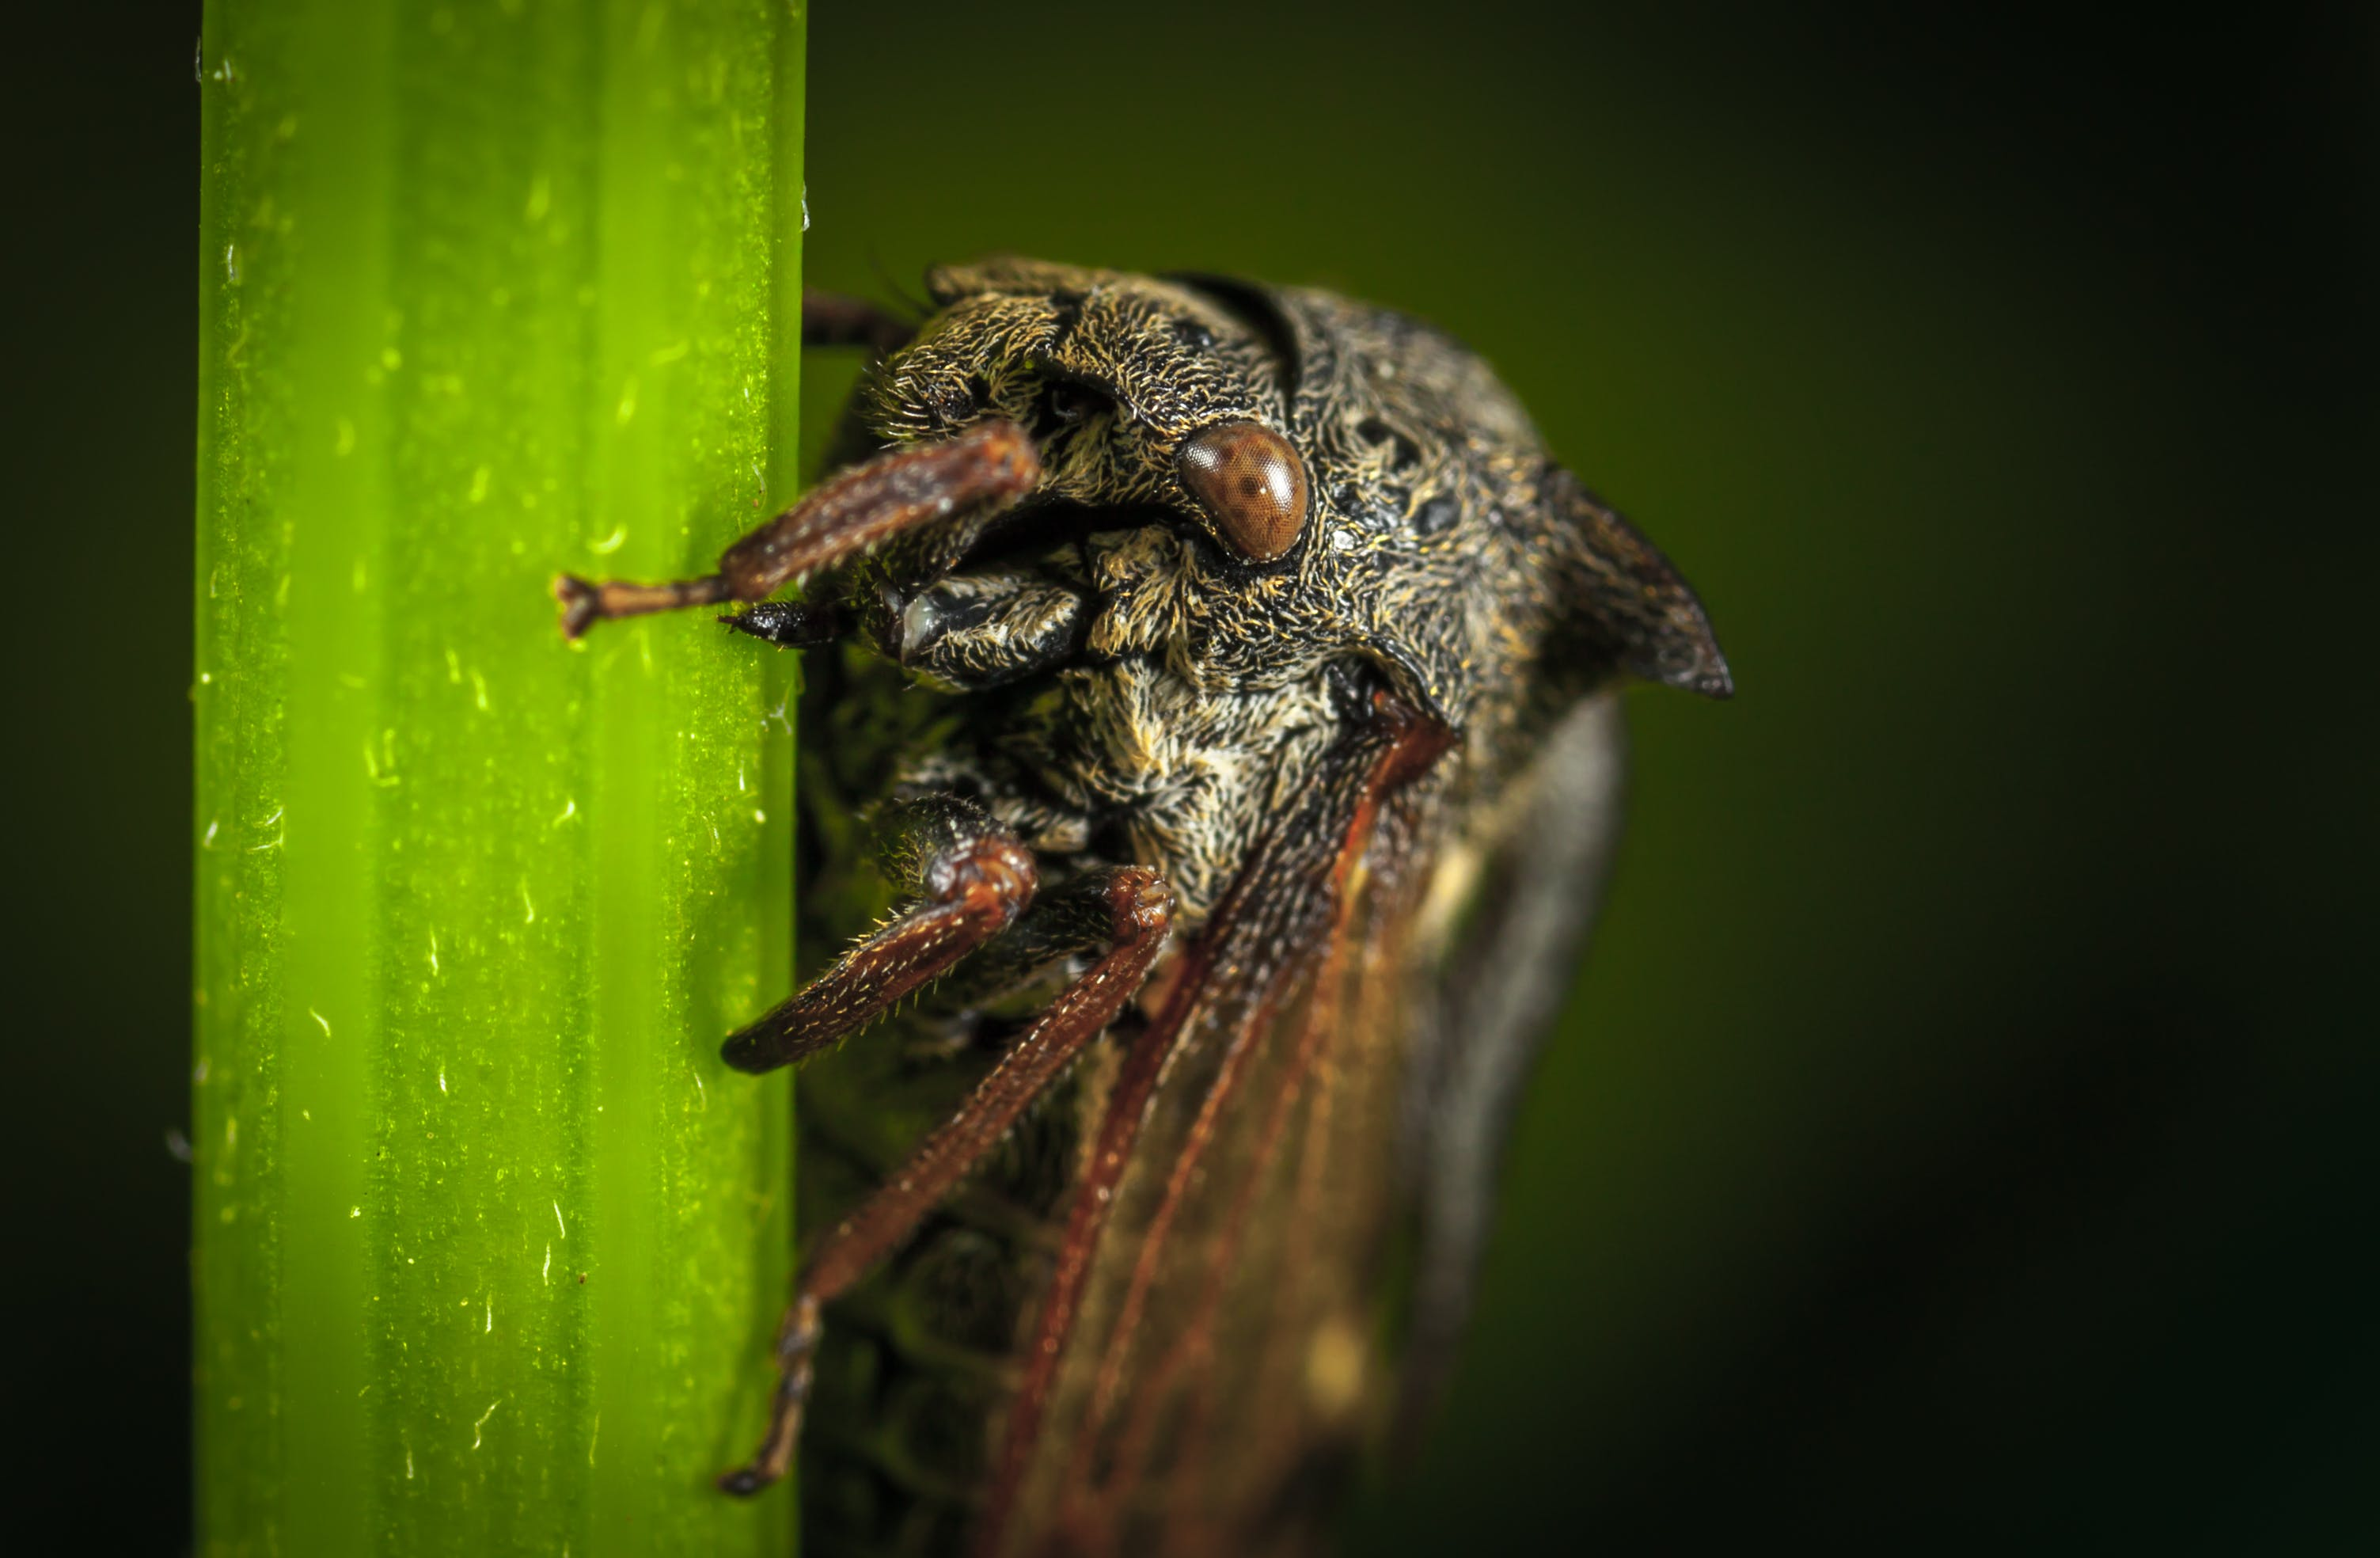 Close Up Photo of Black Cicada on Green Leaf